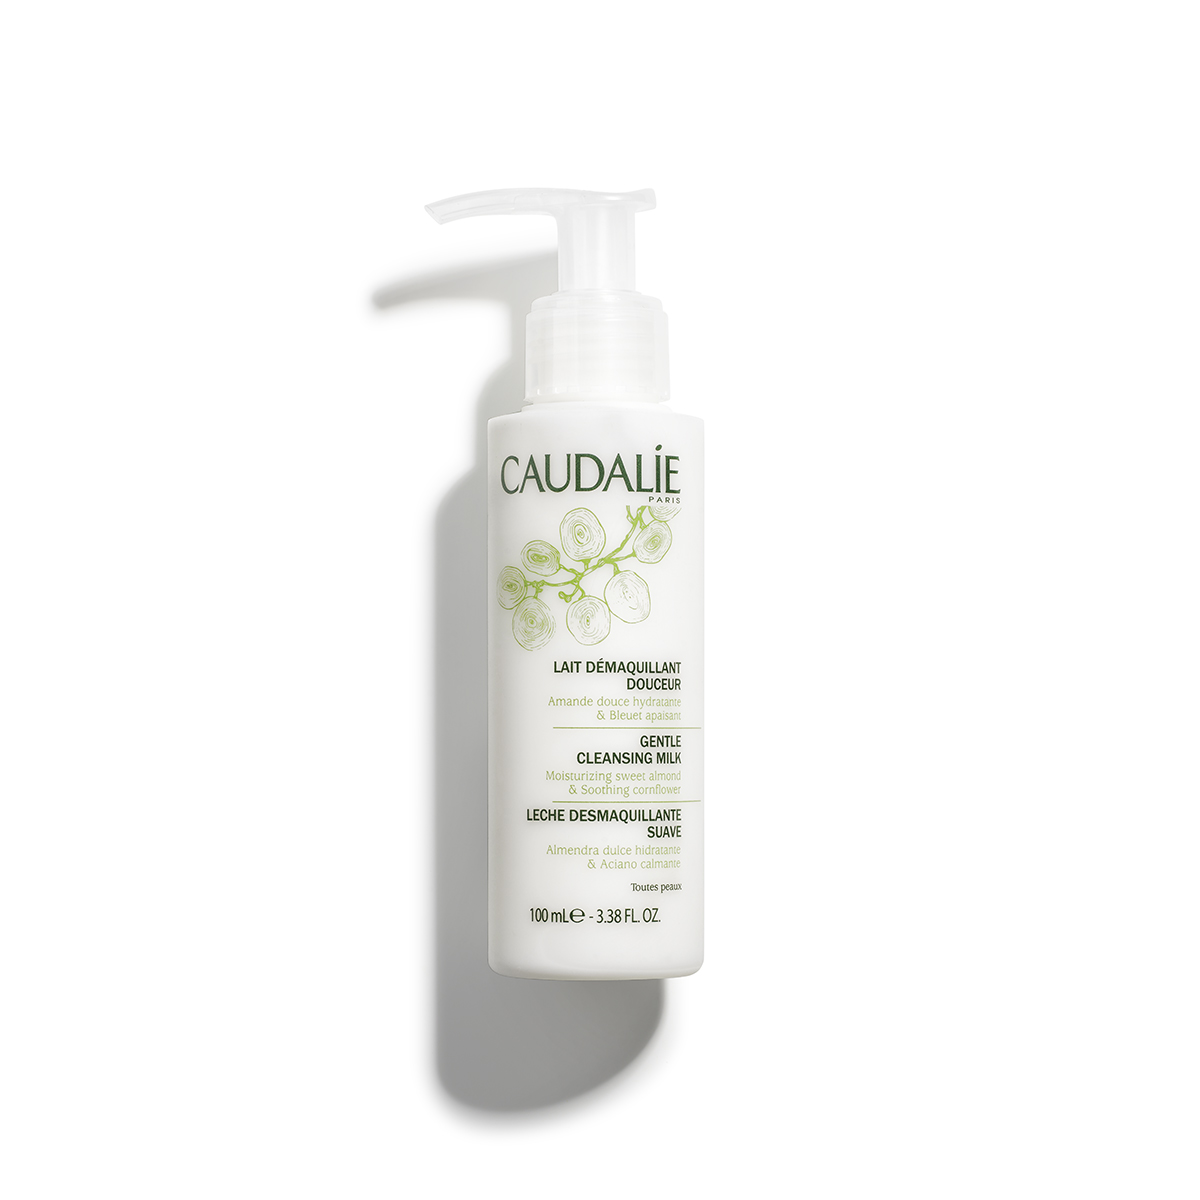 Gentle Cleansing Milk - Travel Size